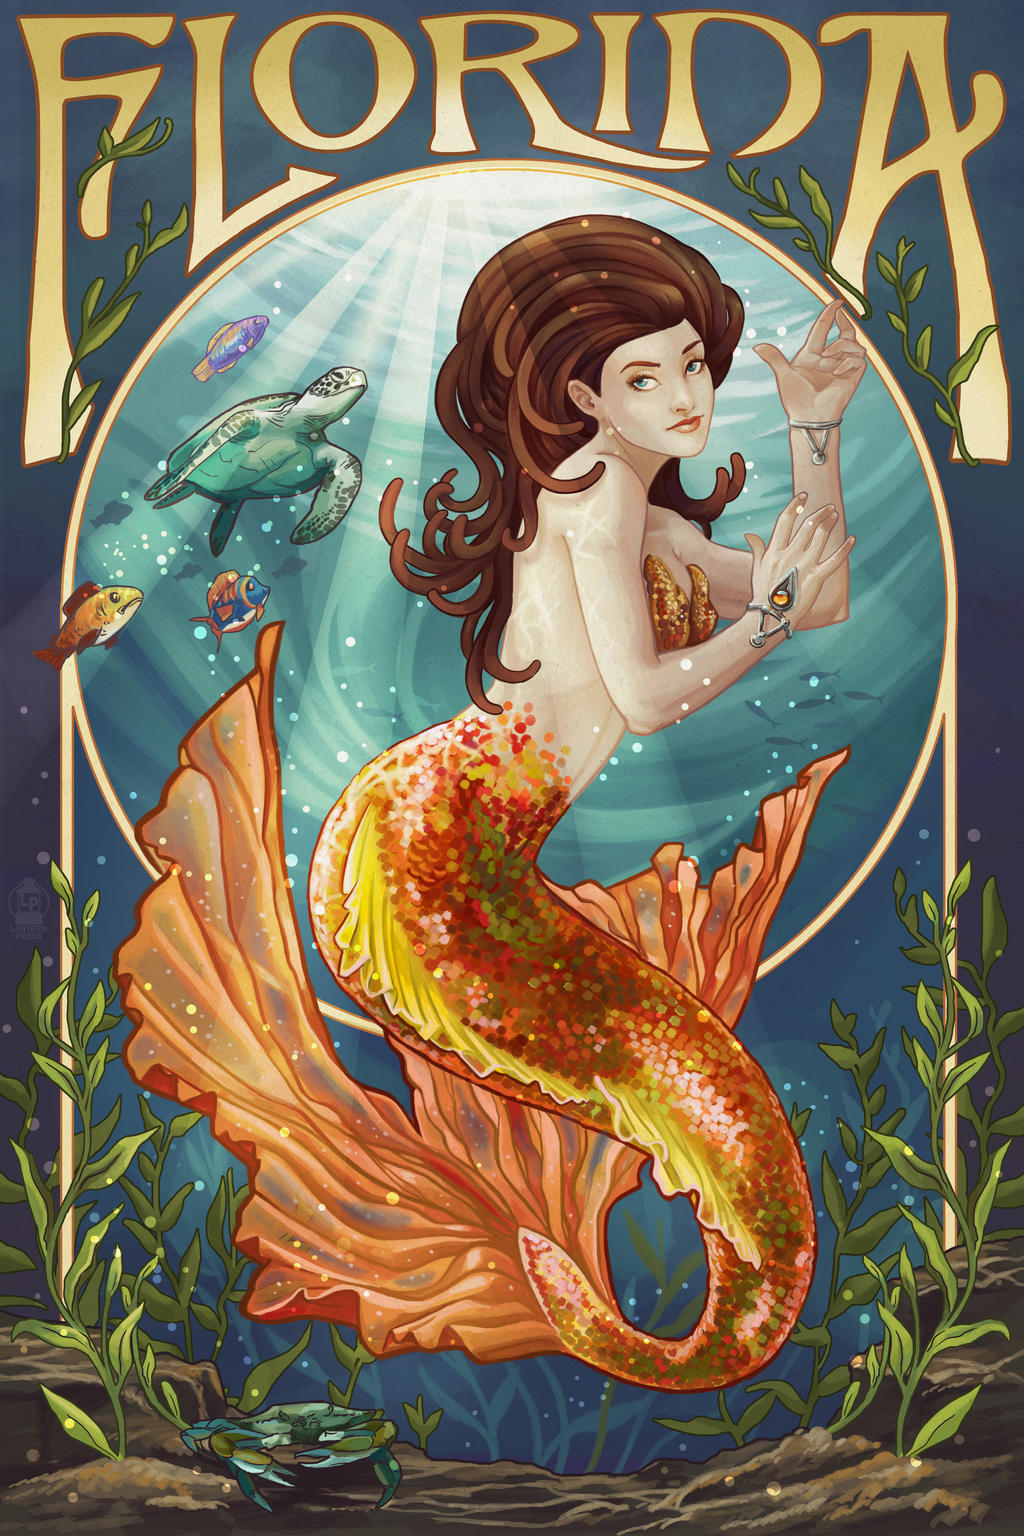 Mermaid by Chronoperates